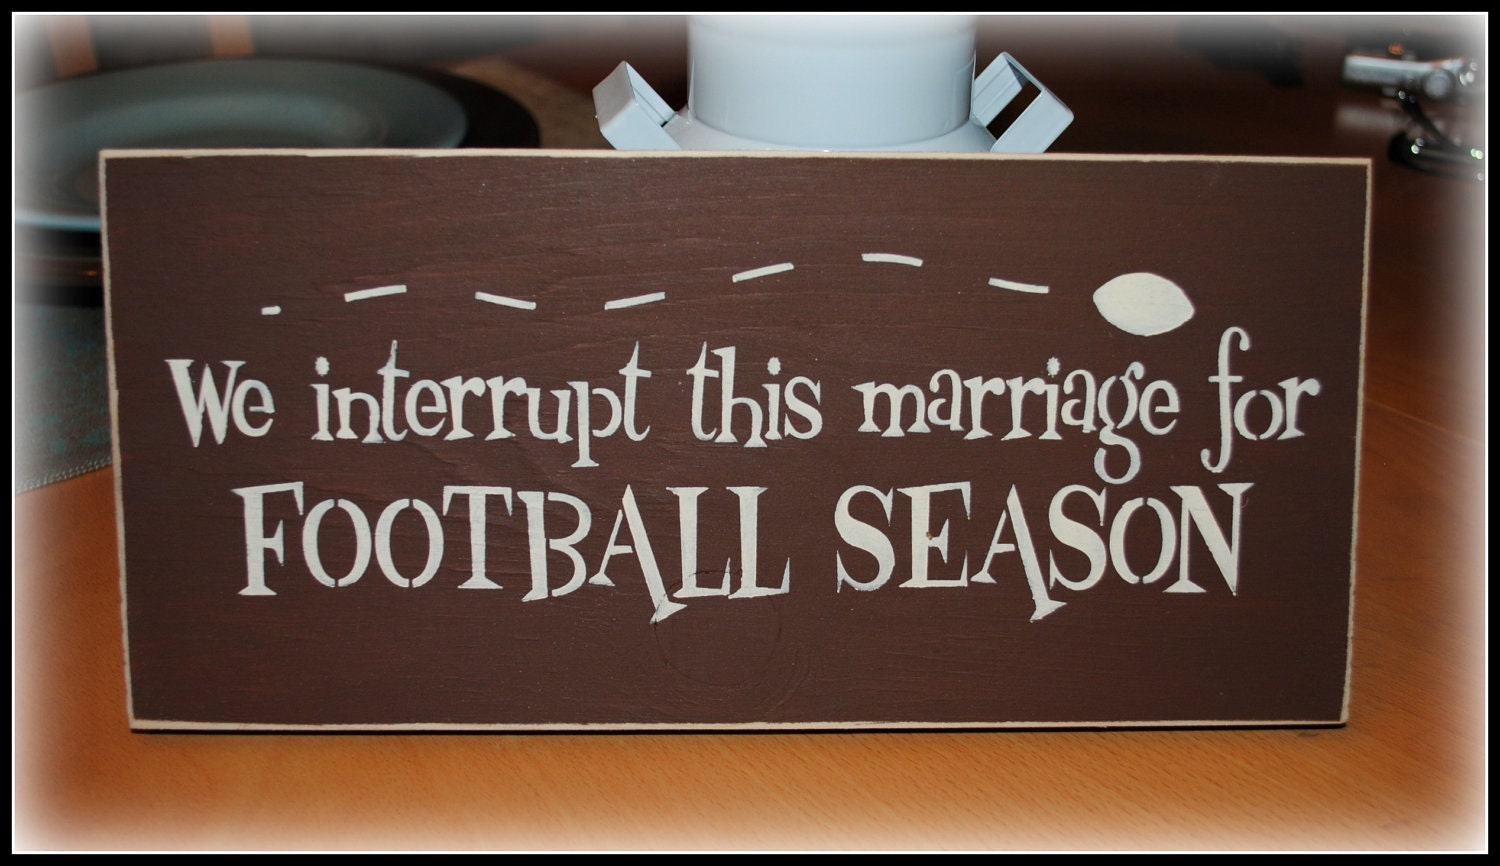 Wood Sign We Interrupt This Marriage For Football Season. Voluntary Signs. Propane Signs Of Stroke. Hindi Signs Of Stroke. Belong Together Signs. Death Signs. Revenge Signs. Holistic Signs. Real World Signs